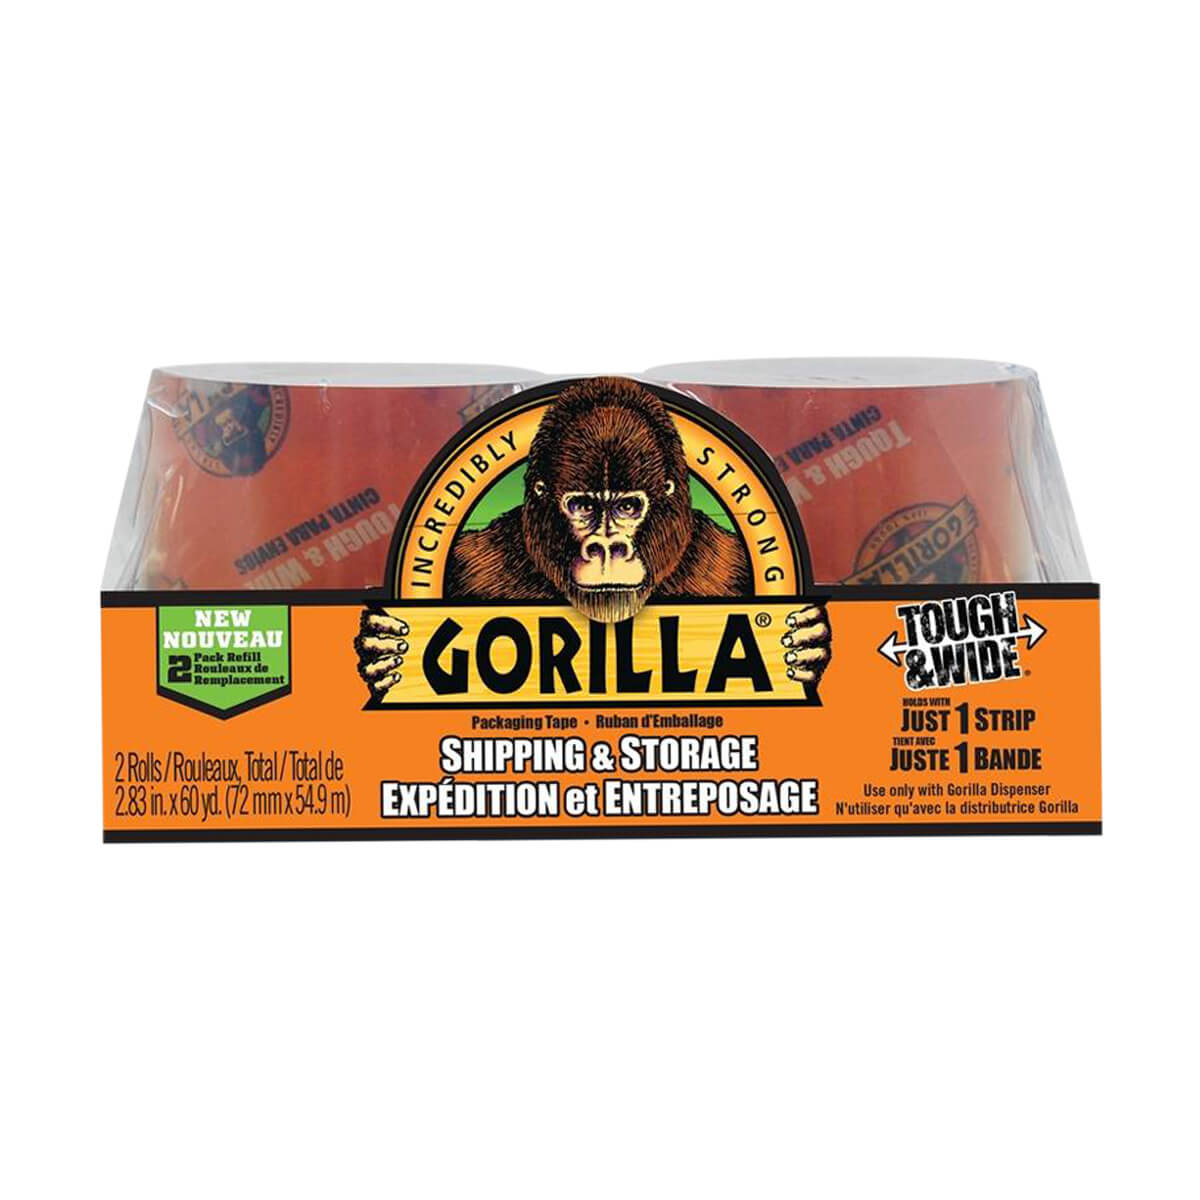 Gorilla Tough and Wide Packaging Tape - 30 yd